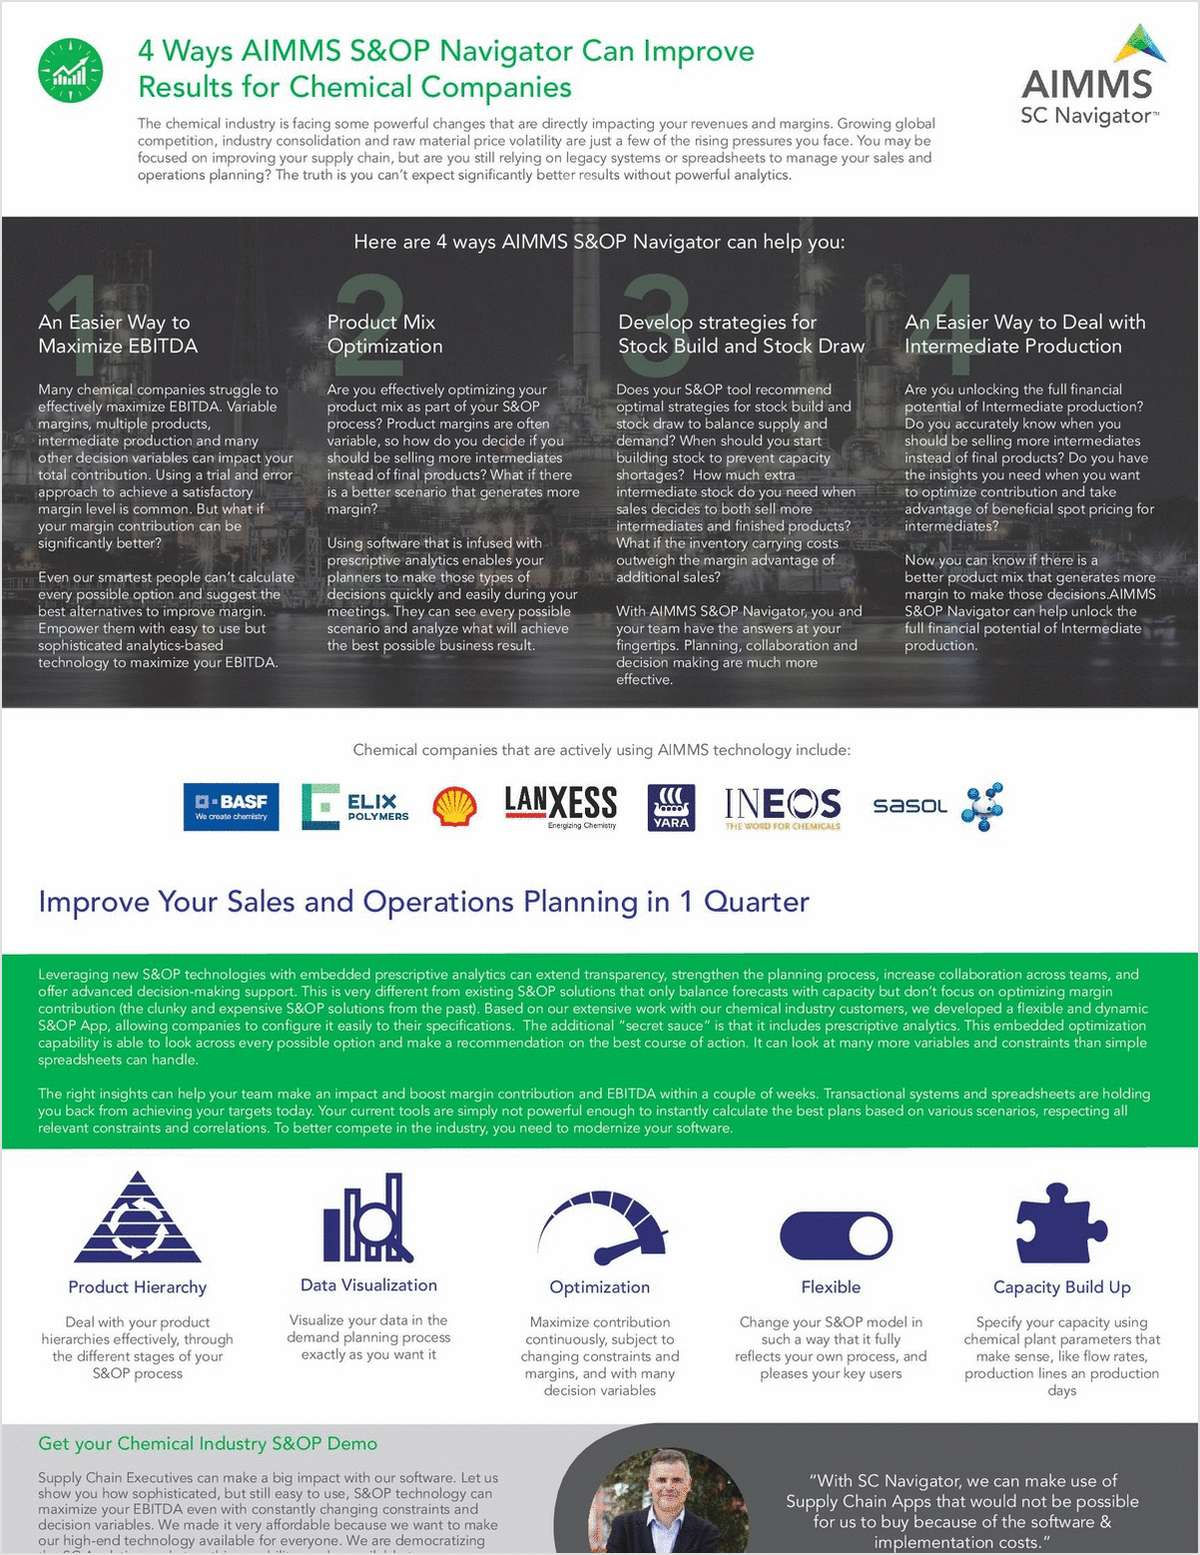 4 Ways Better S&OP Tools Can Improve Results for Chemical Companies